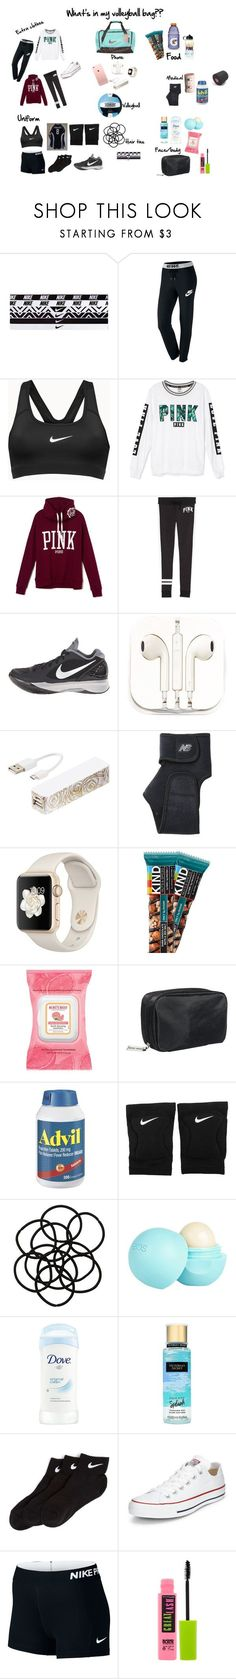 """""""What's in my volleyball bag"""" by makayla-brooke ❤ liked on Polyvore featuring NIKE, Victoria's Secret, PhunkeeTree, Triple C Designs, New Balance, Burt's Bees, Bobbi Brown Cosmetics, Monki, River Island and Converse"""